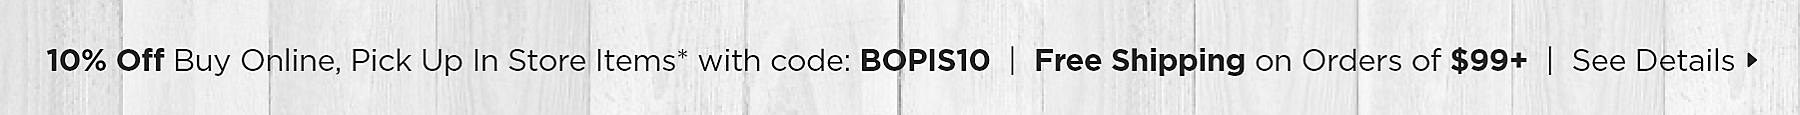 10% Off Buy Online, Pick Up In Store Items with code: BOPIS10 Plus Free Shipping on Orders over $99 See Details